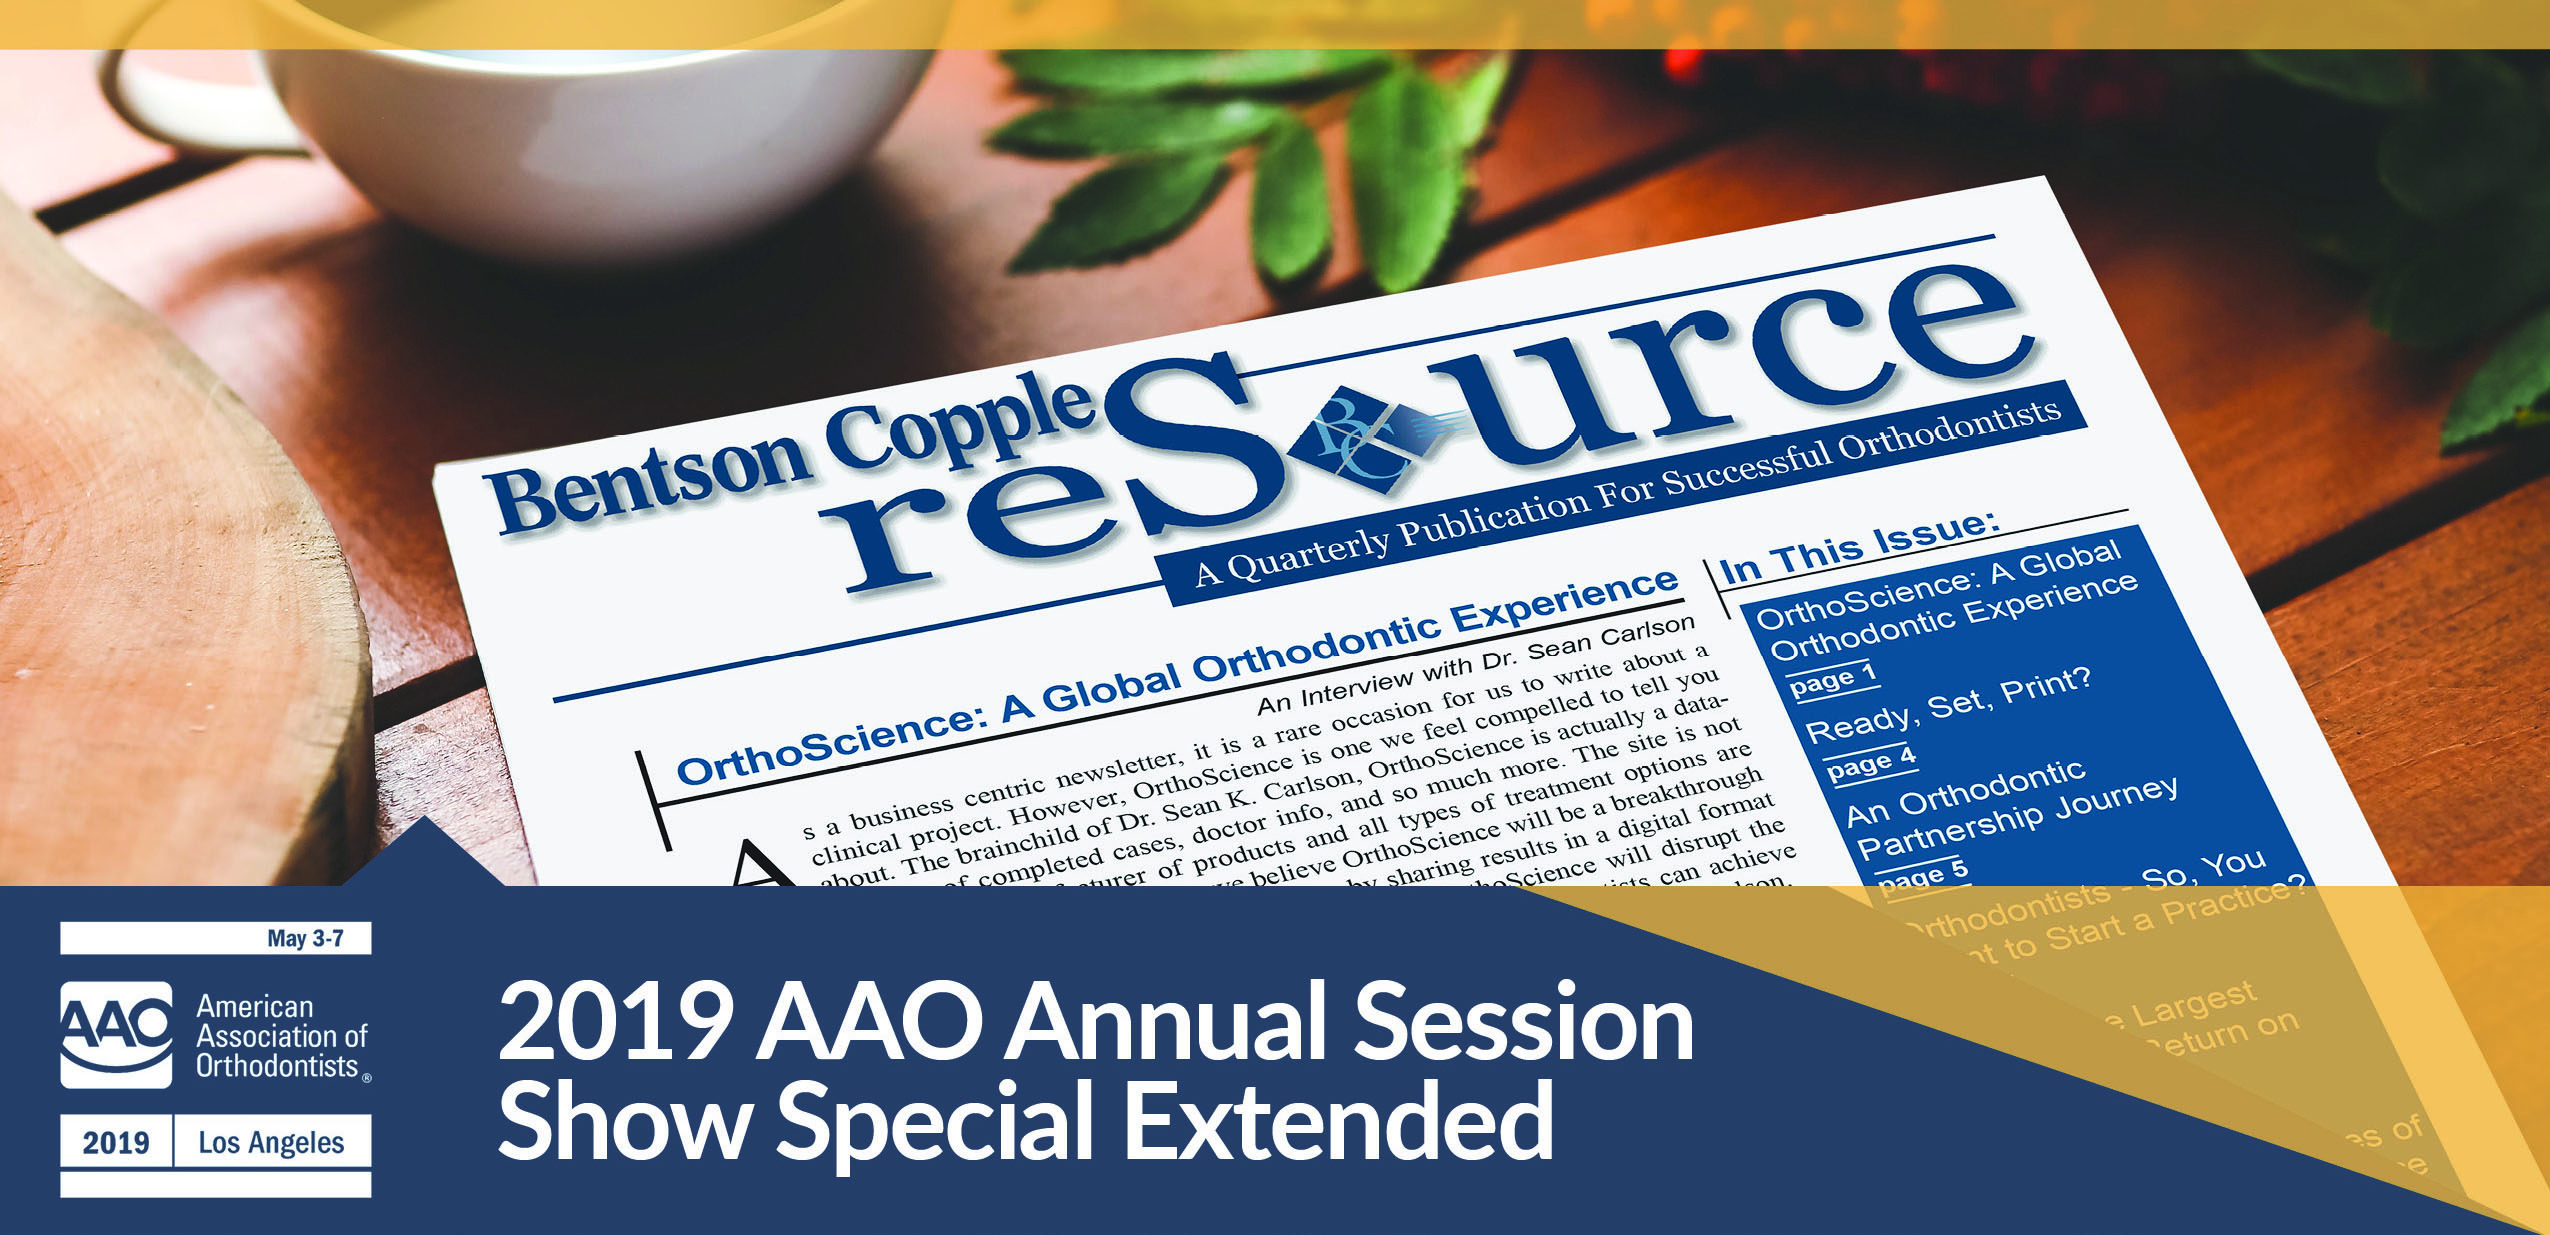 2019 AAO Bentson Copple reSource Show Special Extended